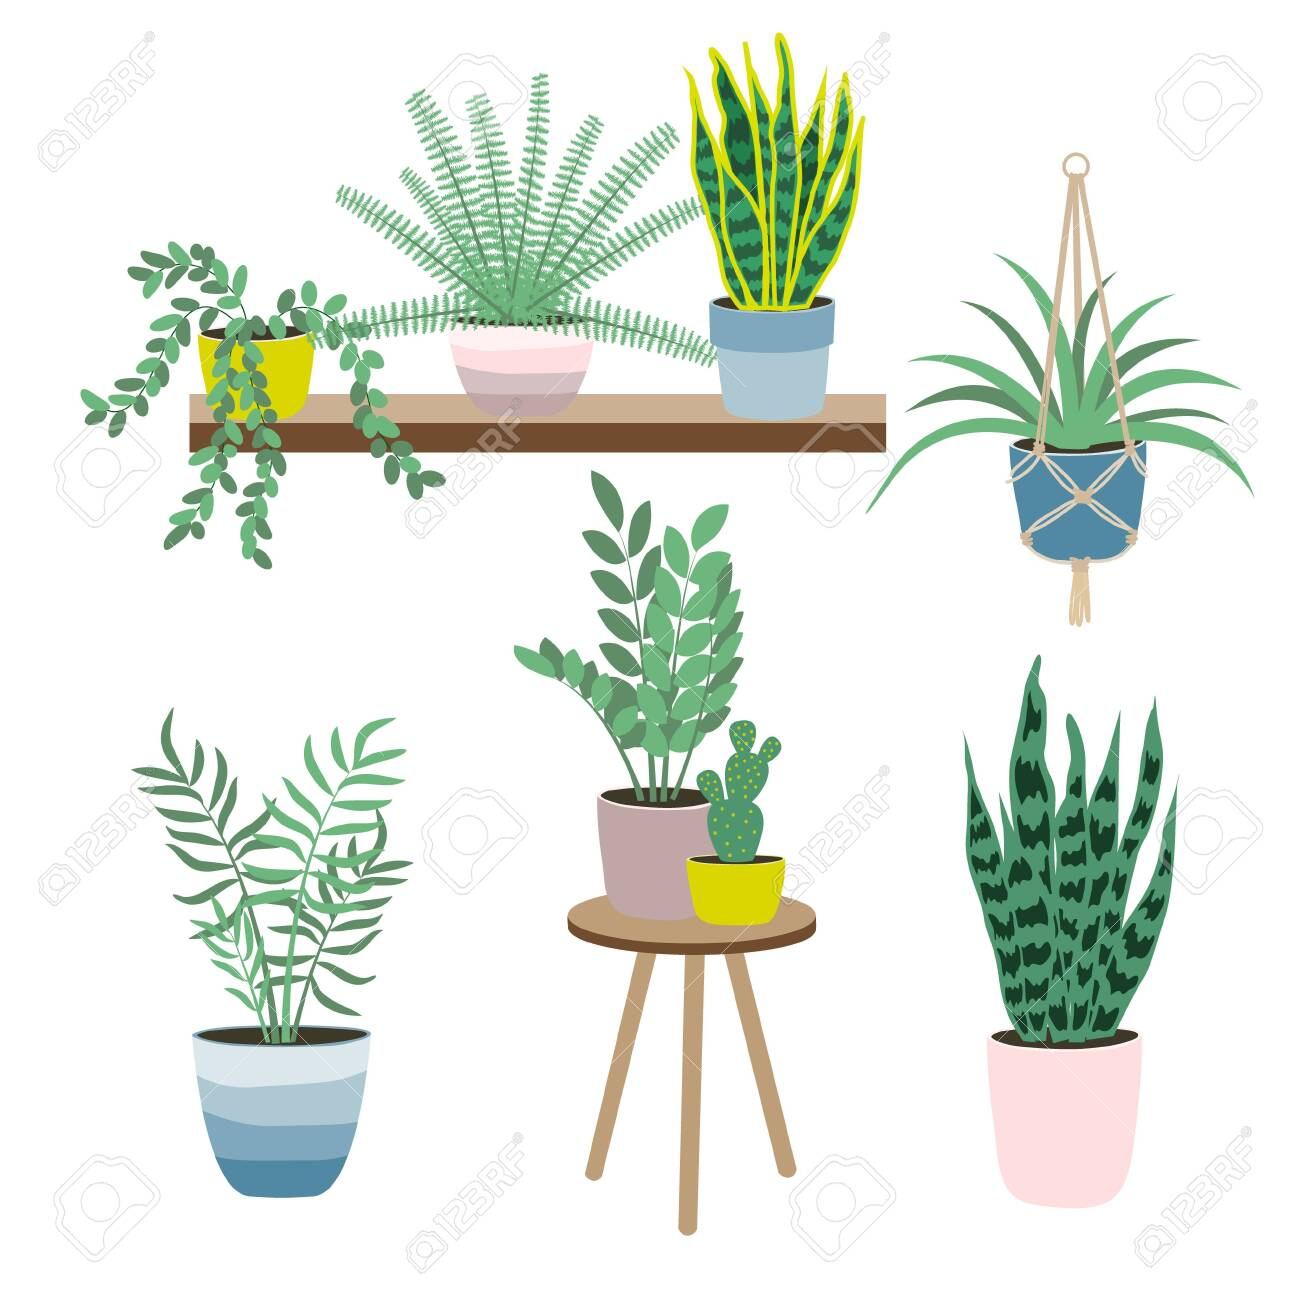 Set Of House Plants Isolated On White Background Potted Plants Royalty Free Cliparts Vectors And Stock Illustration Image 135084353